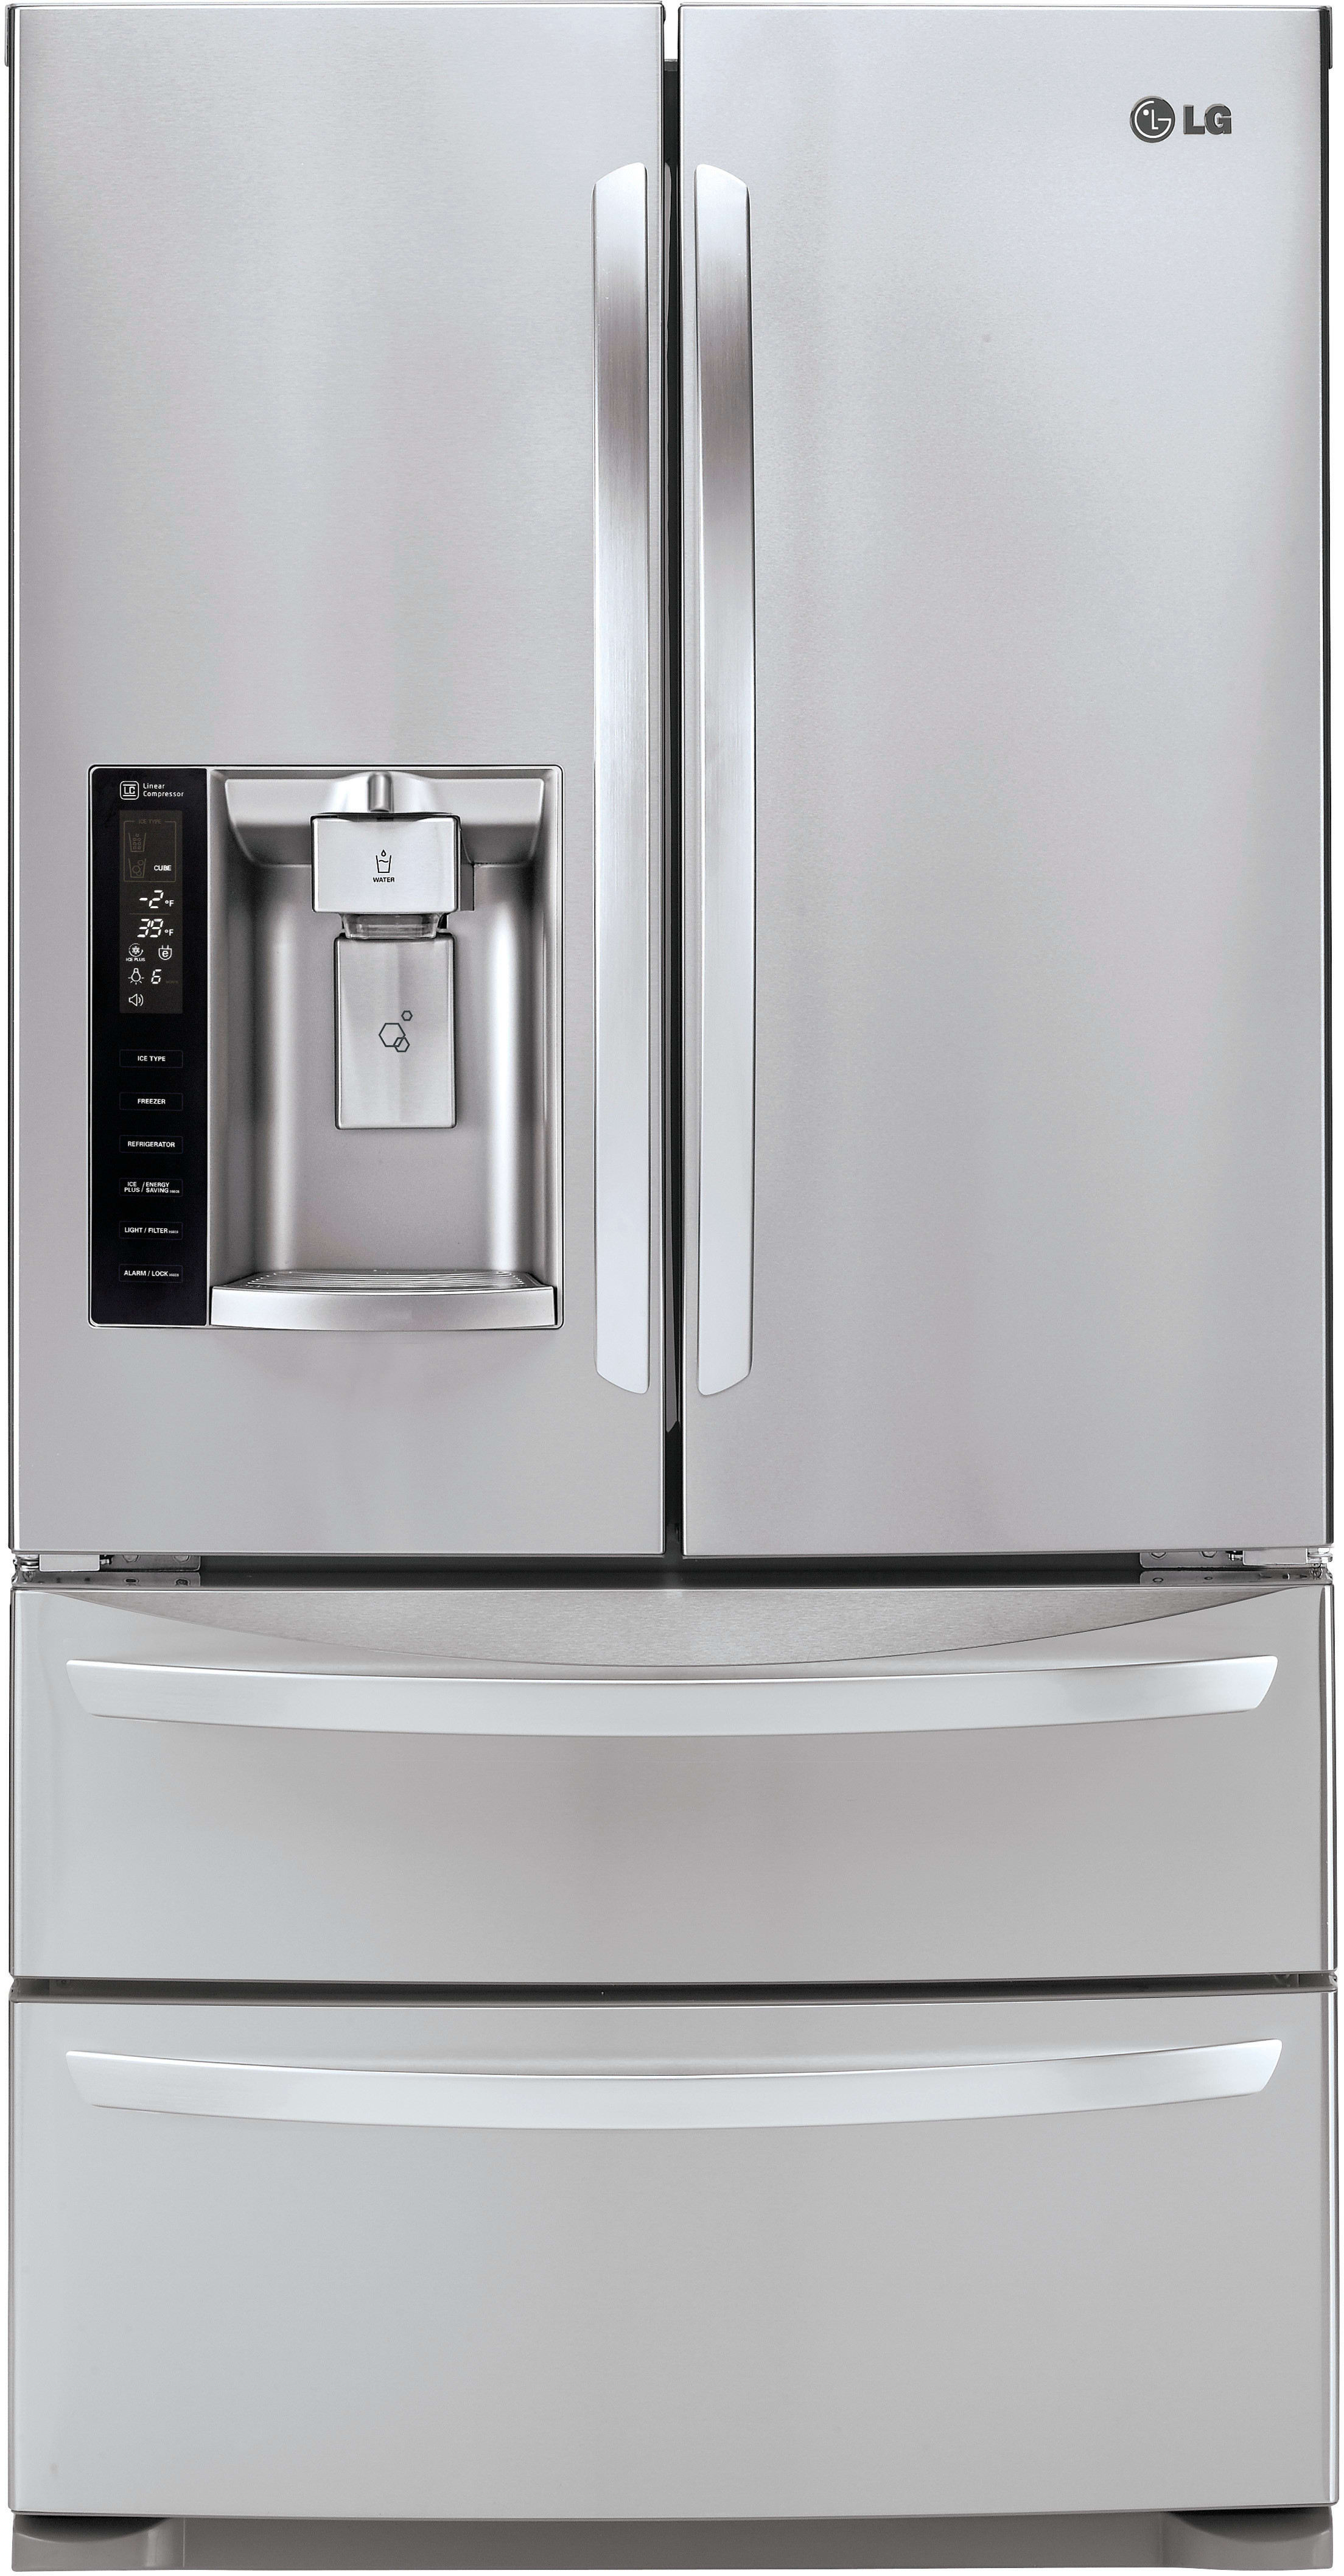 Lg Lmxs27626s 36 Inch 4 Door French Door Refrigerator With